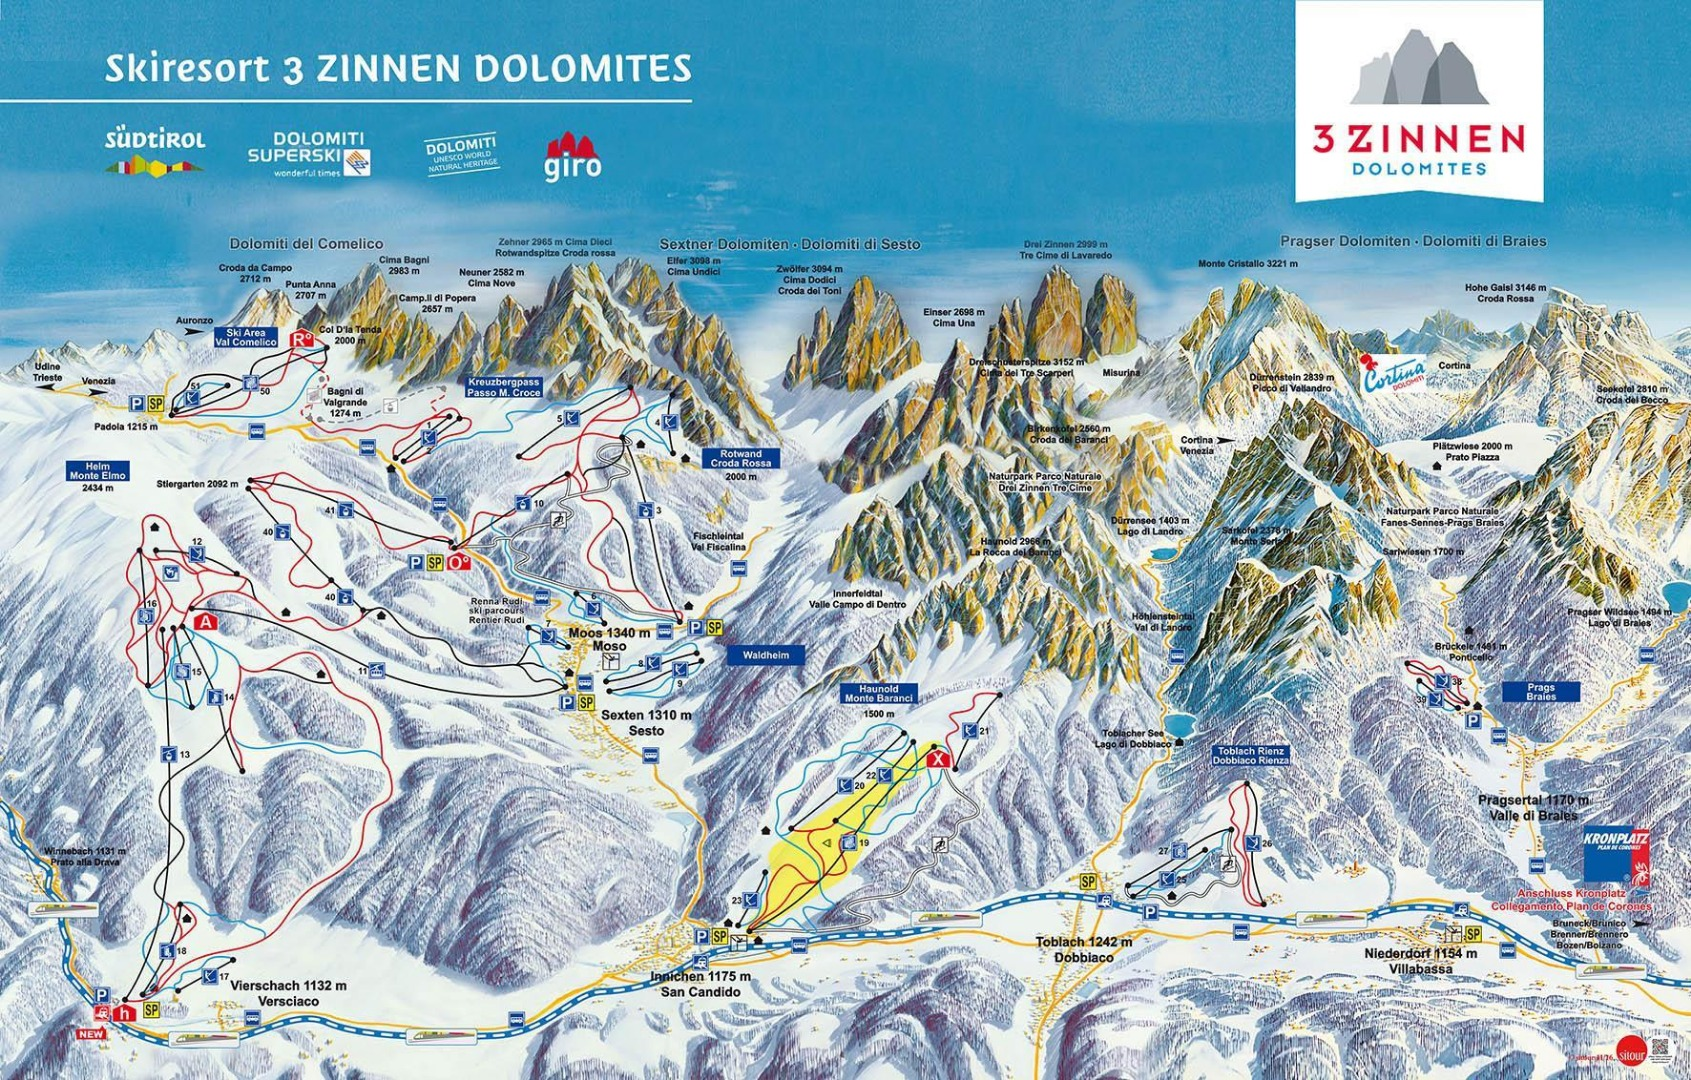 Overview of the ski resort in the heart of the Sesto / Sexten Dolomites